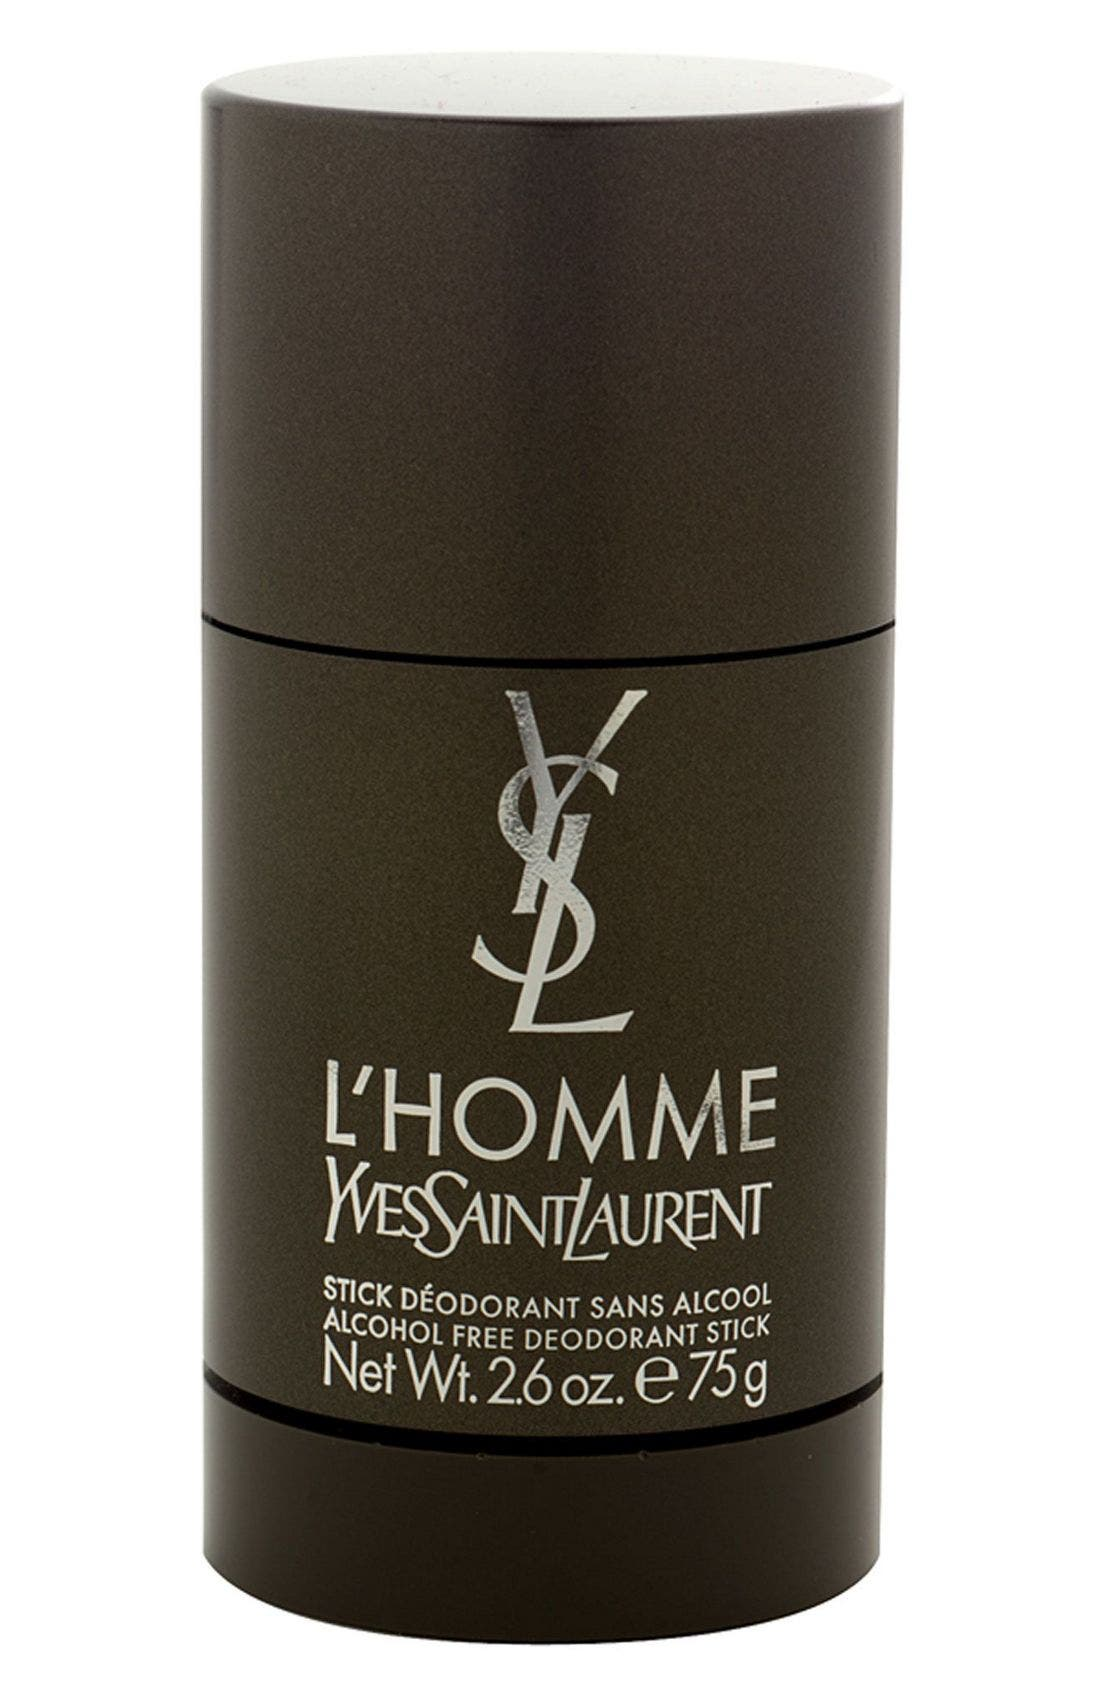 Yves Saint Laurent 'L'Homme' Alcohol Free Deodorant Stick